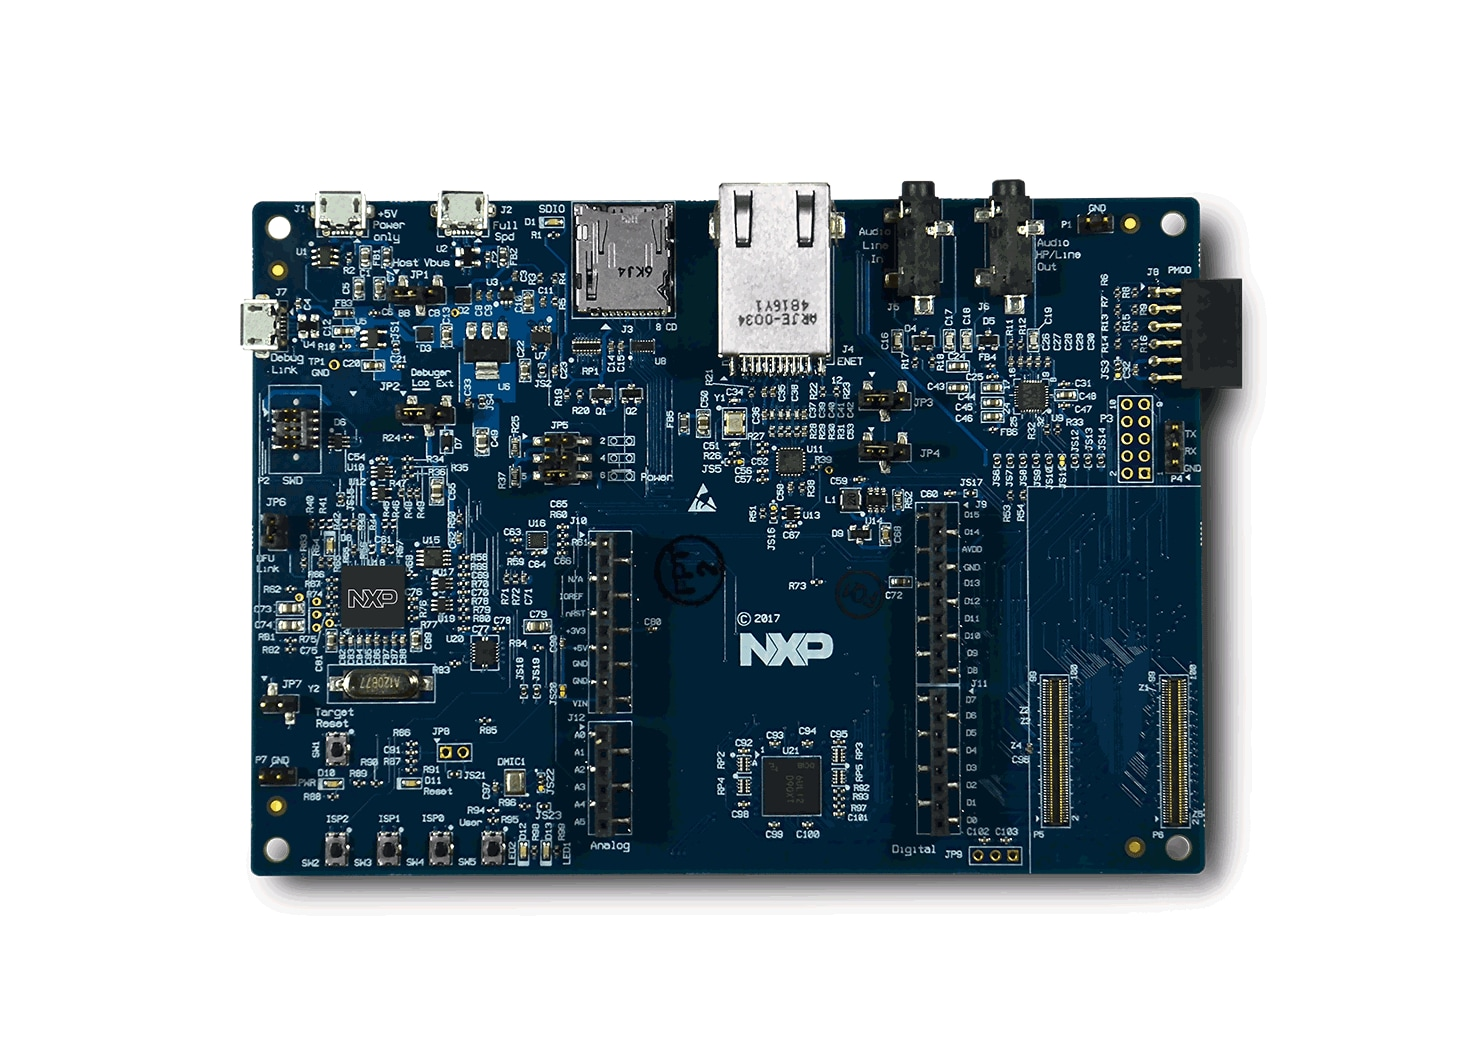 OM40006 Base Board (top)